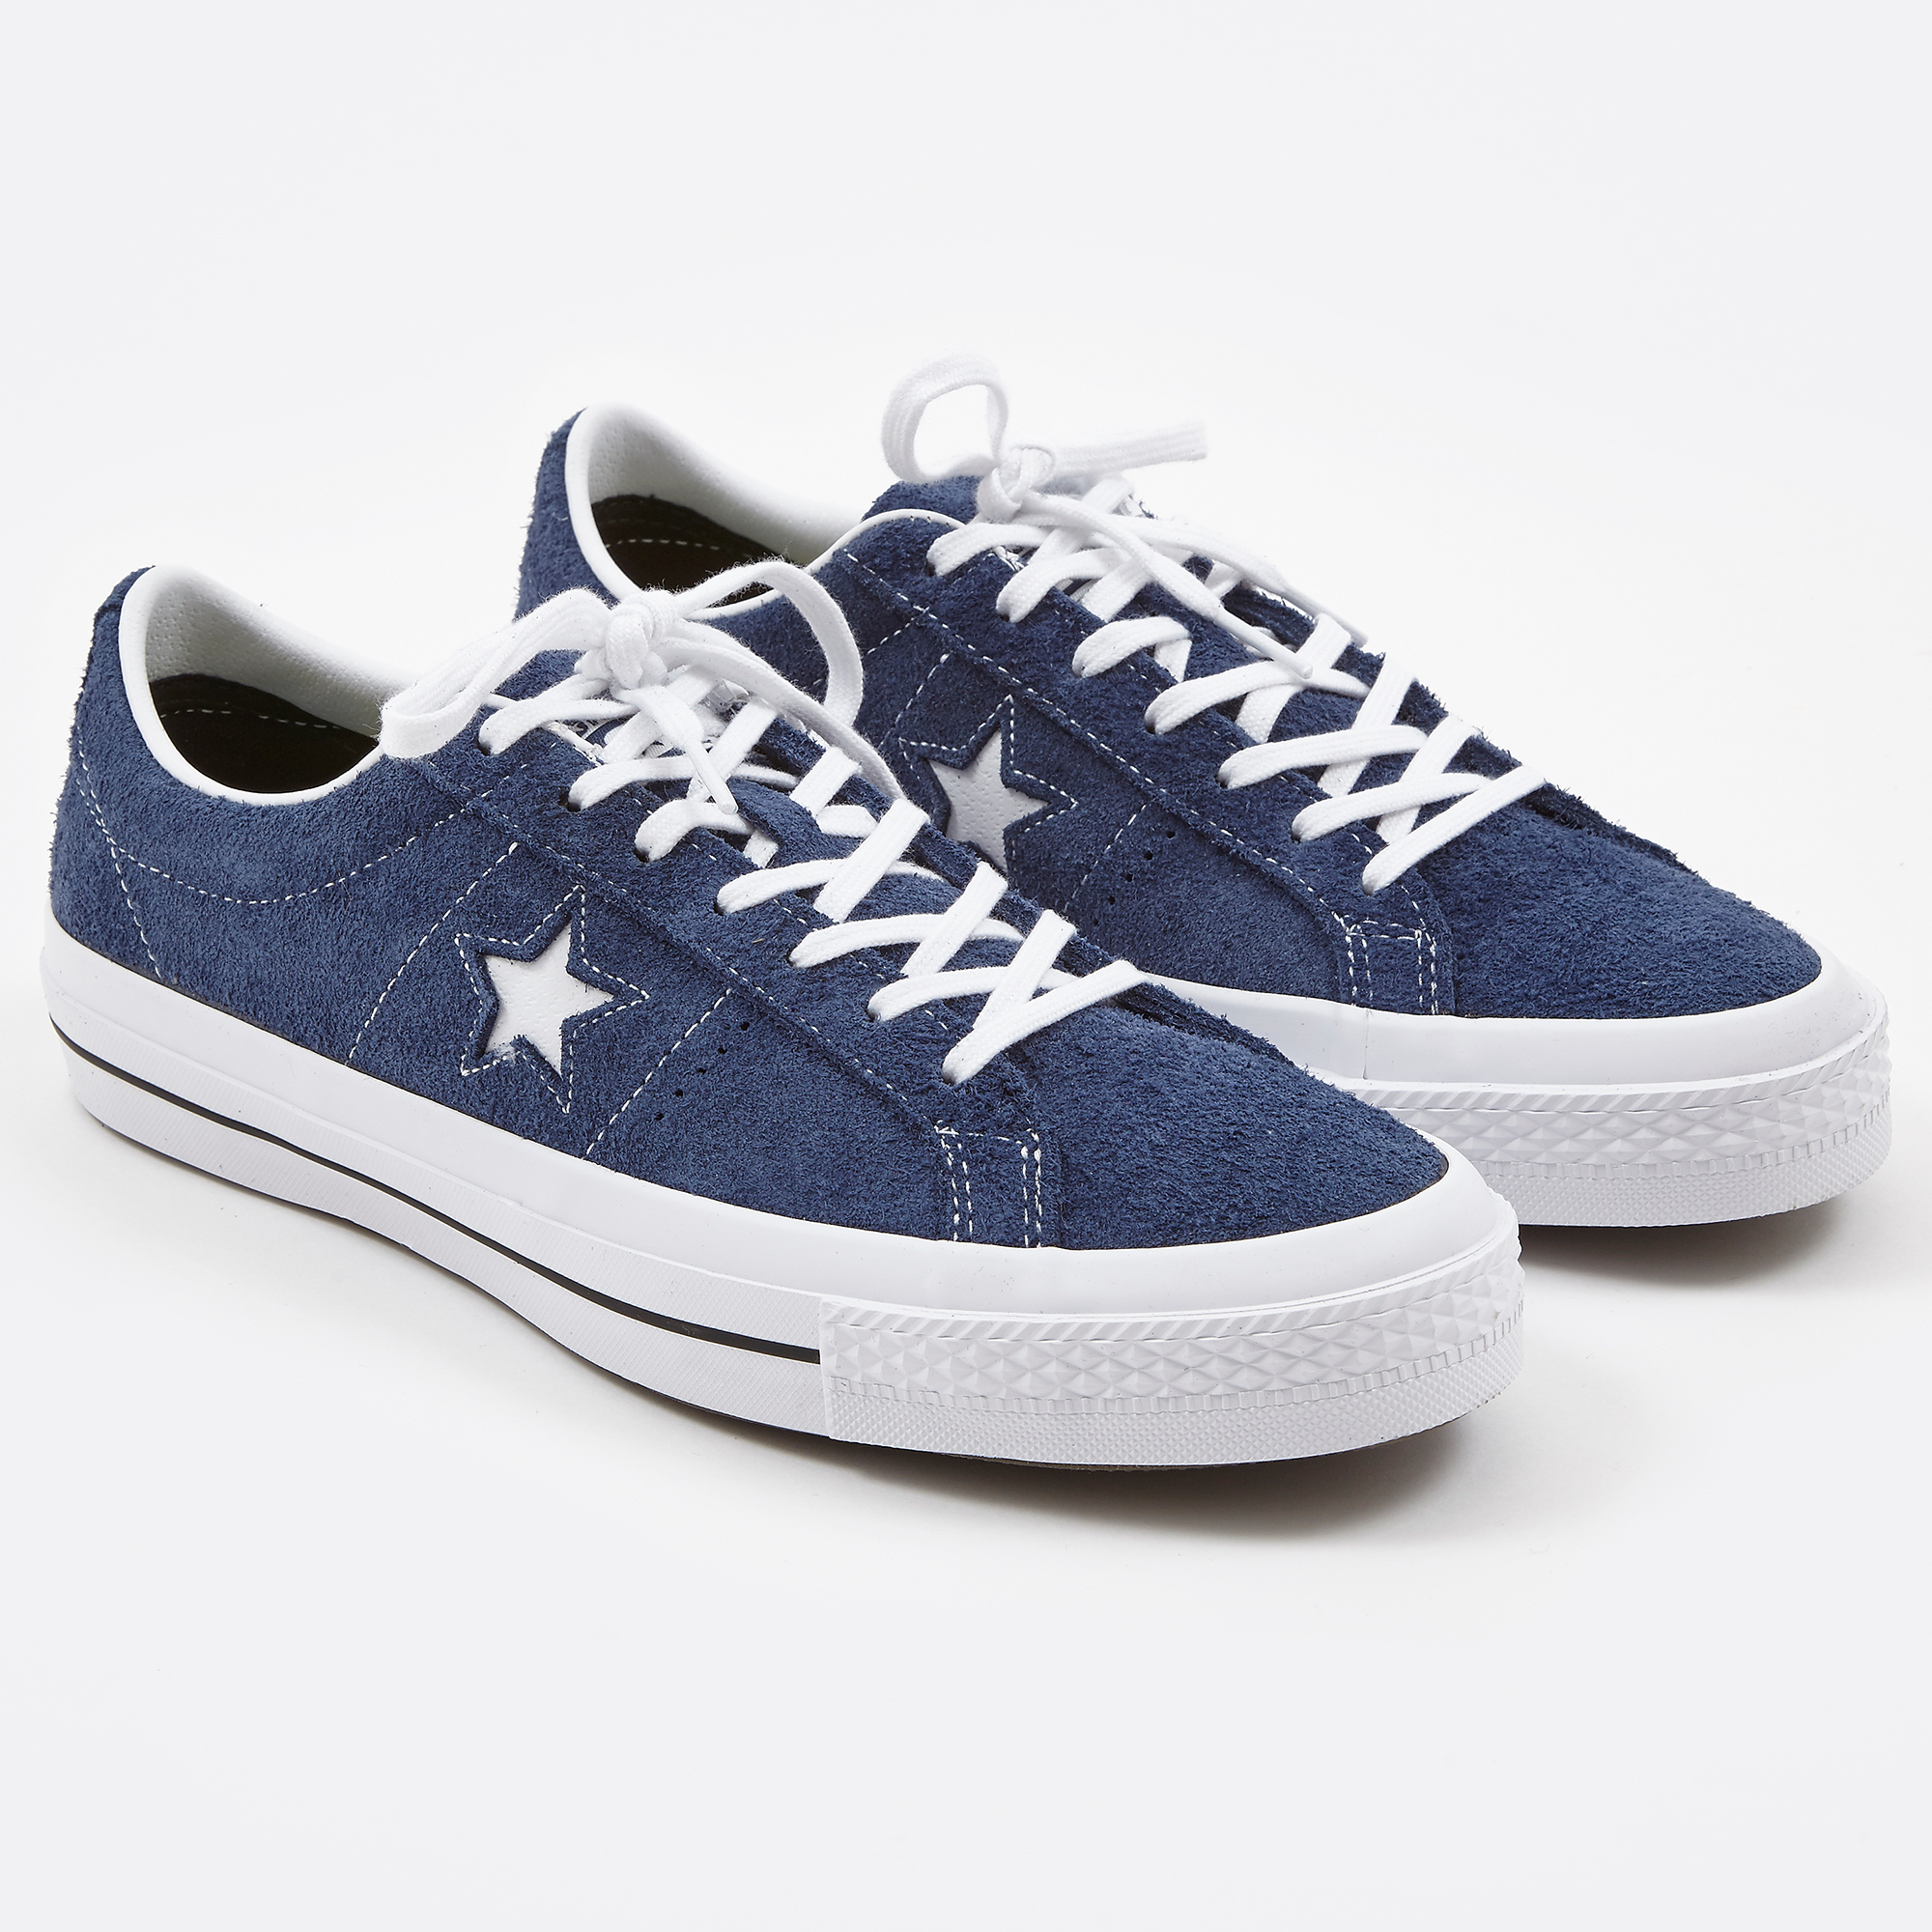 Converse for Men One Star Suede Navy Sneakers 7330185